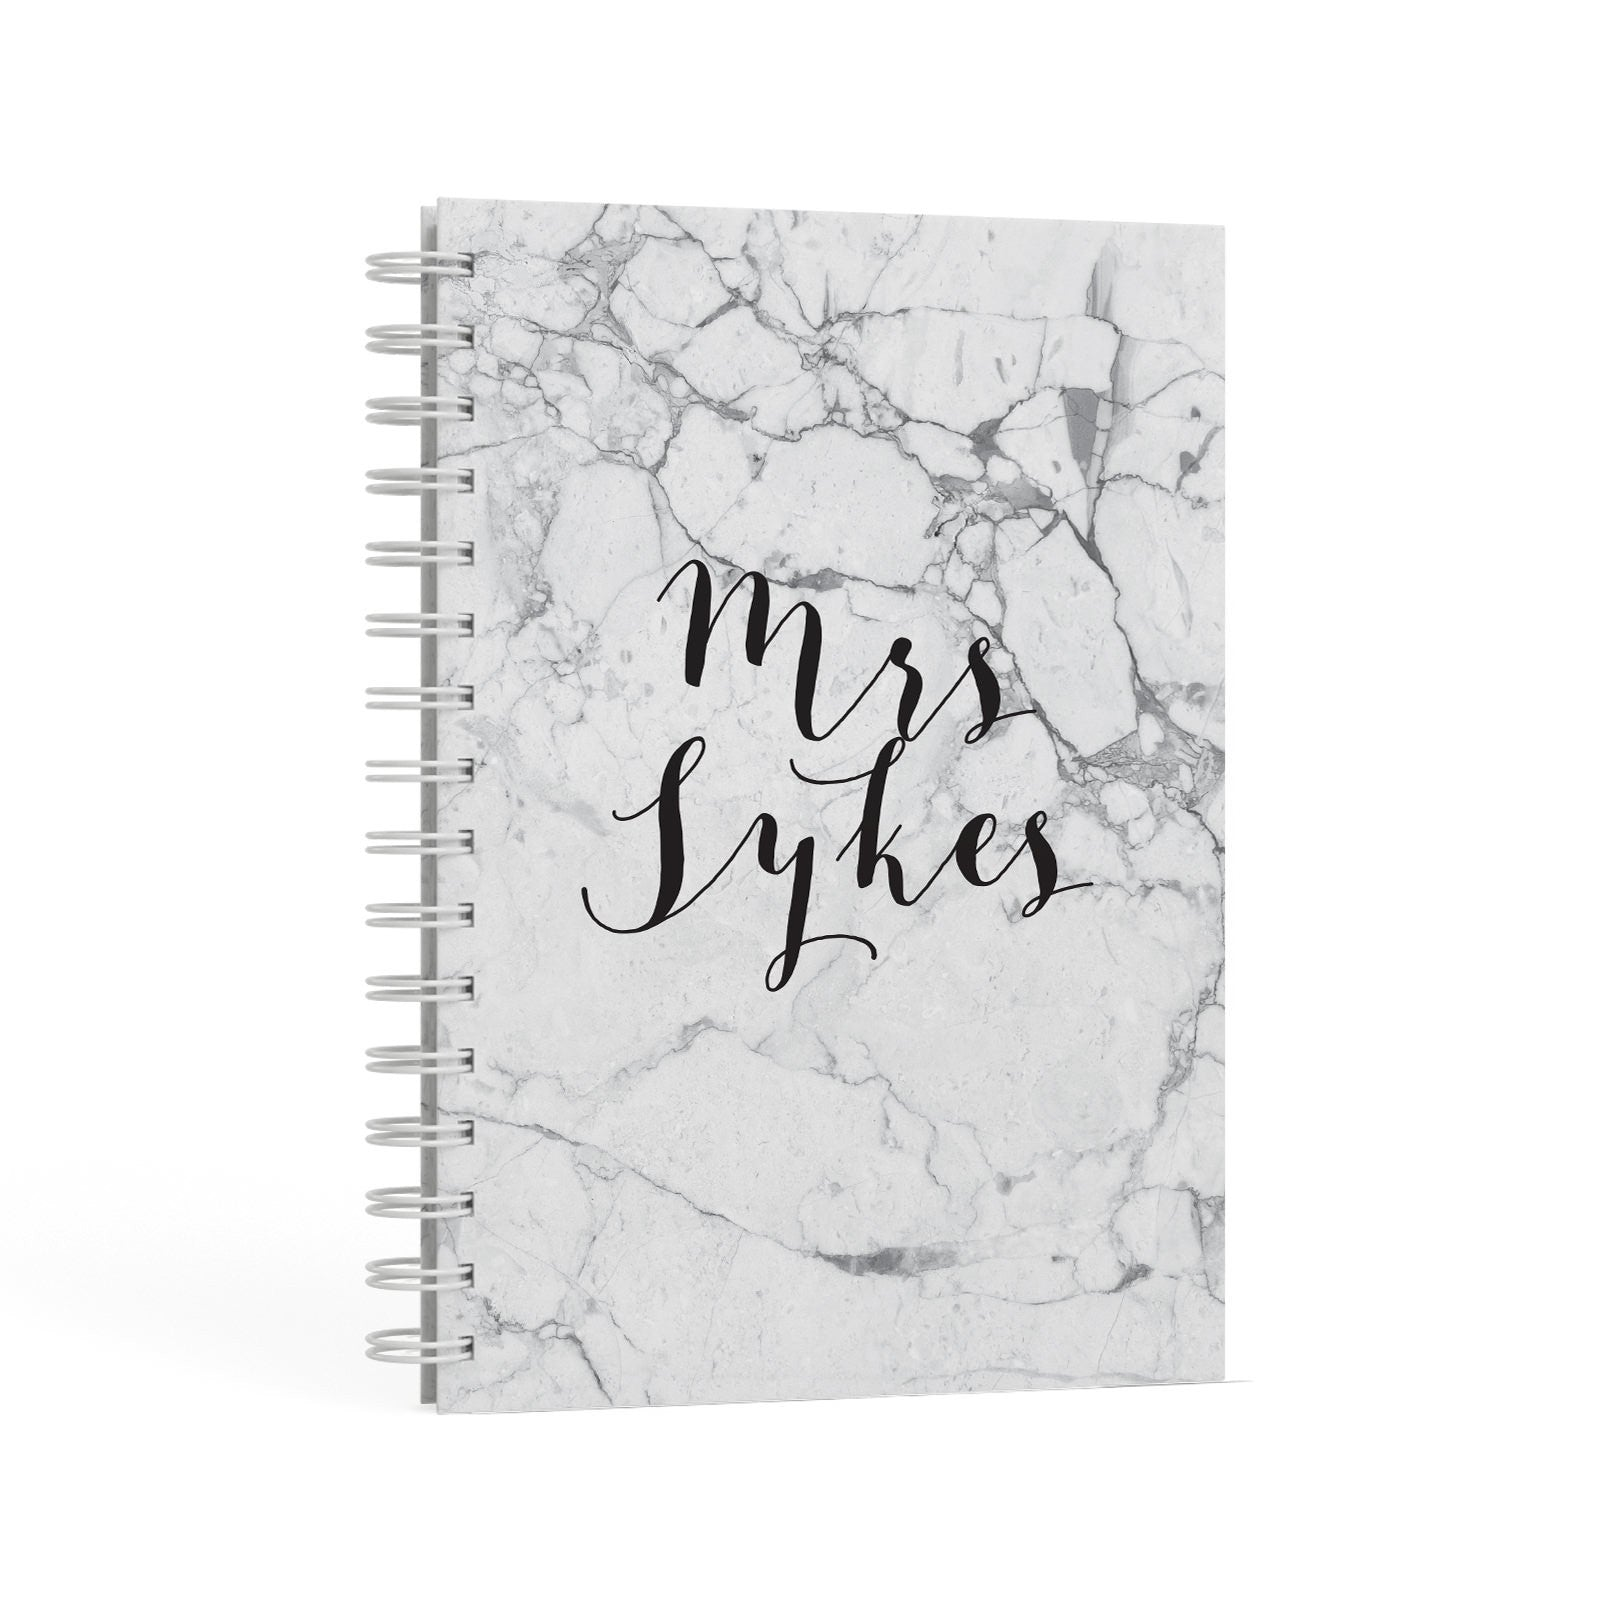 Surname Personalised Marble A5 Hardcover Notebook Second Side View